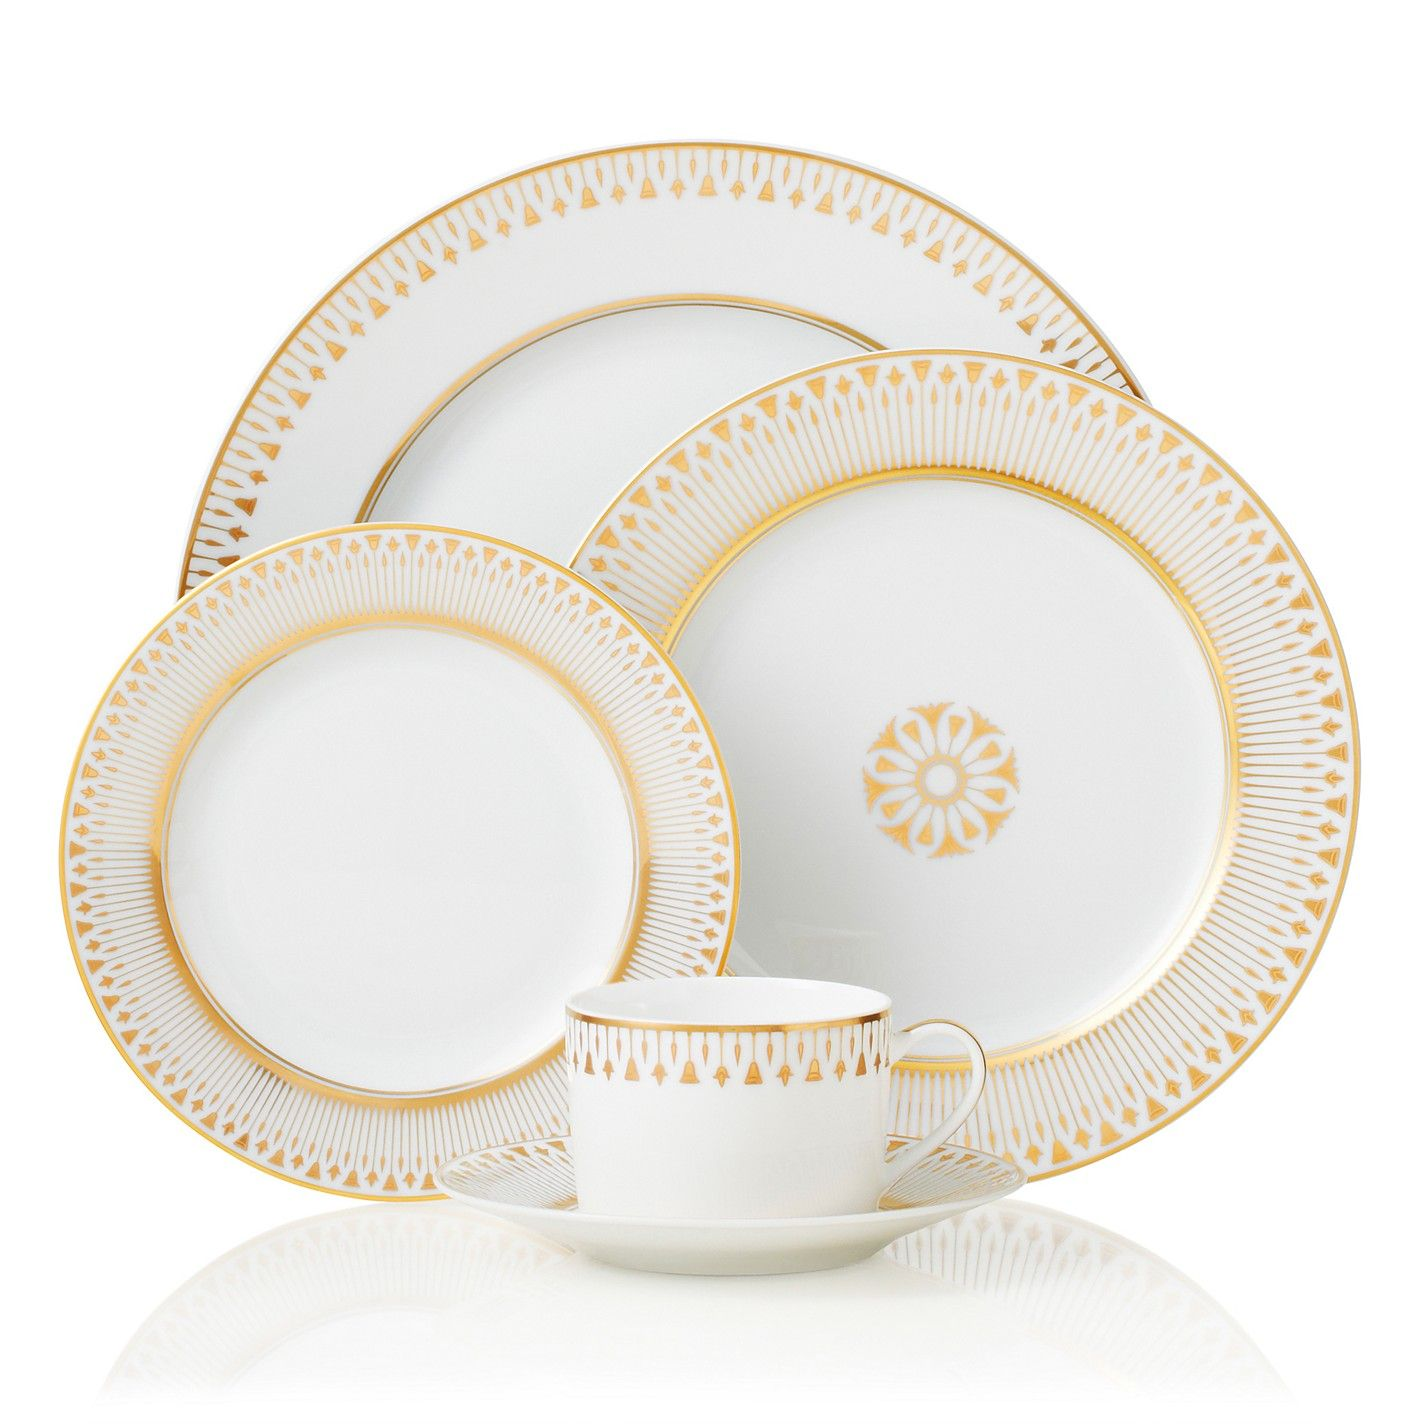 Fall In Love With Registry Must Haves From Michael Aram